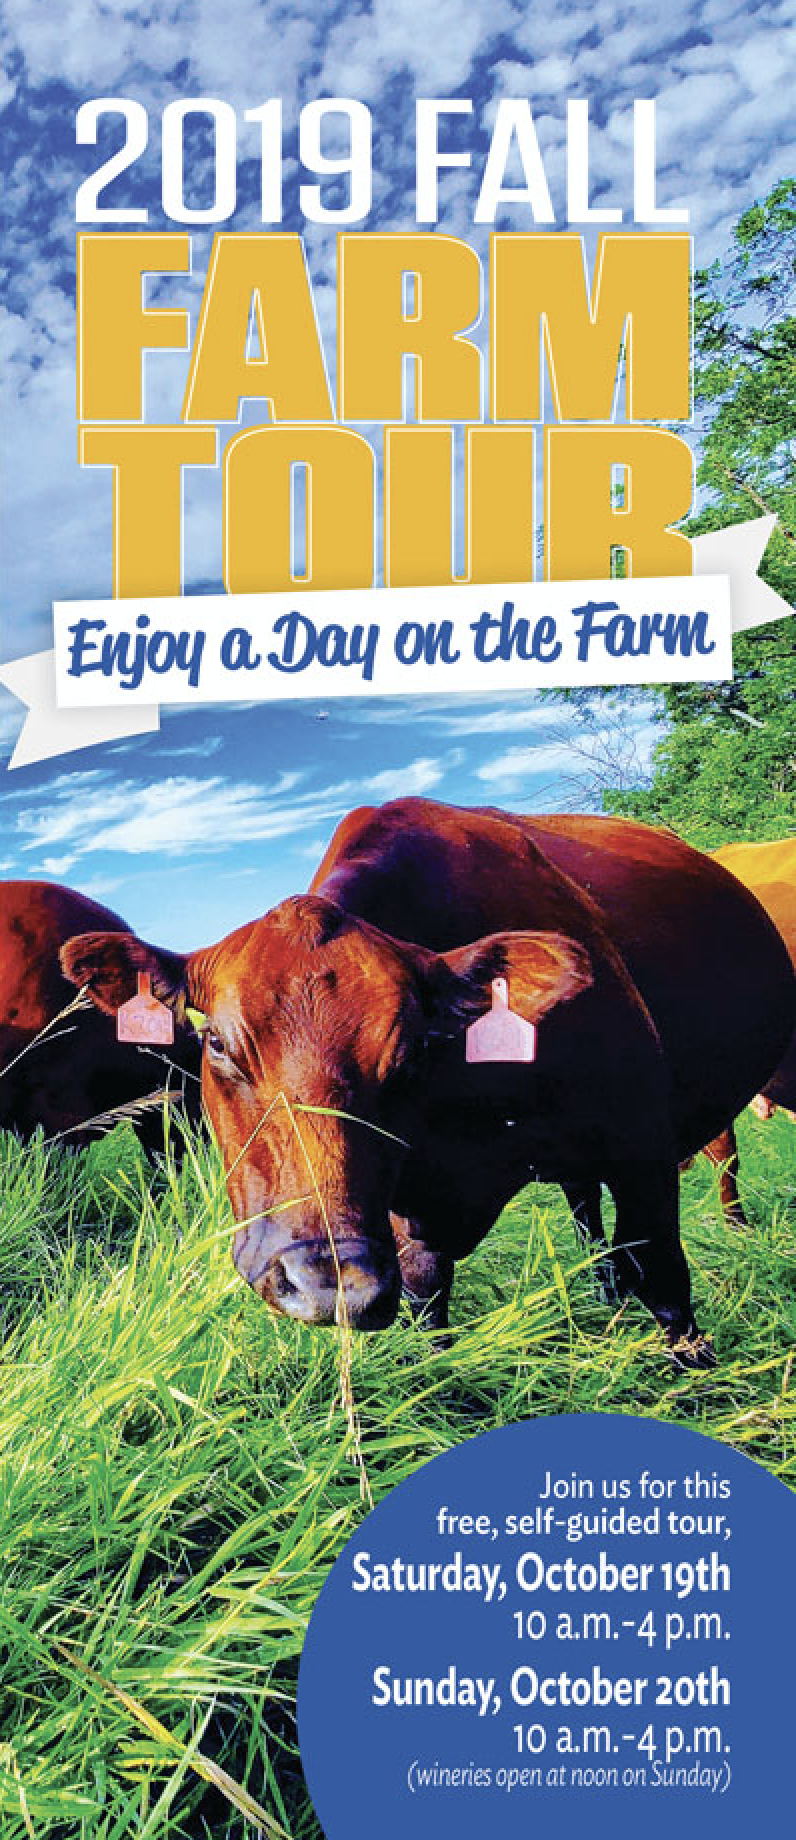 https://www.adayonthefarminkansas.com    Plan a day trip full of rural heritage.    Here are a few tips to help make your day trip more enjoyable:   Please supervise children and promote respect for property, plants, and animals while visiting the farms  Please leave your pets at home due to the volume of guests and children  At our farm, parking is available on the street  Outdoor restrooms available